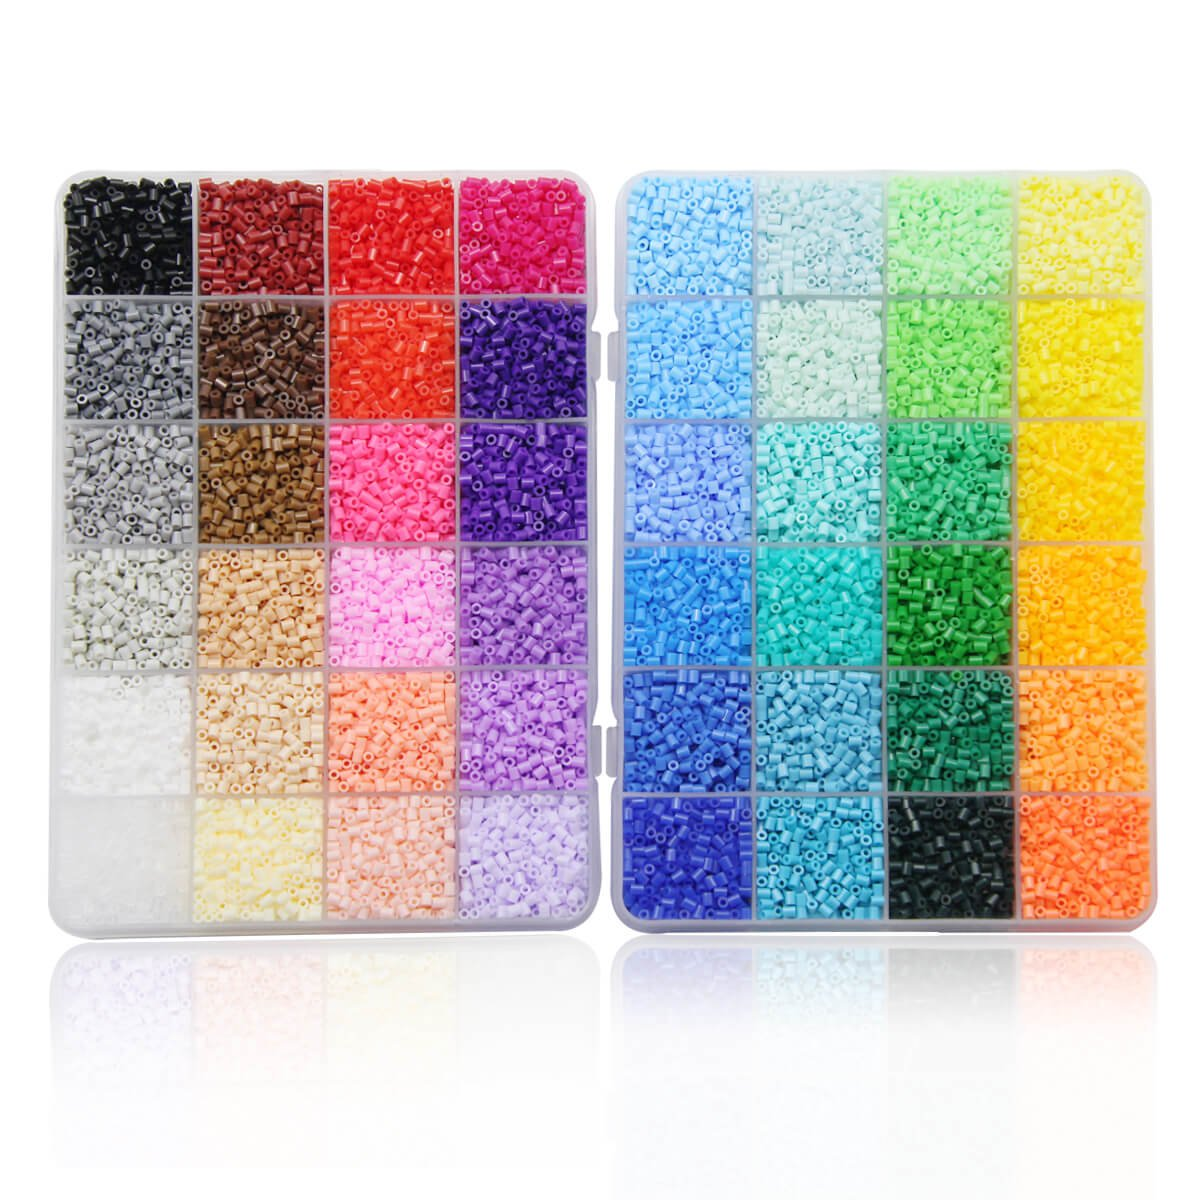 ARTKAL Mini Hard Beads C 2.6mm 24,000 Fuse Beads 48 Colors Assorted in 2 Boxes CC48 (IT'S MINI BEADS NOT STANDARD MIDI BEADS)